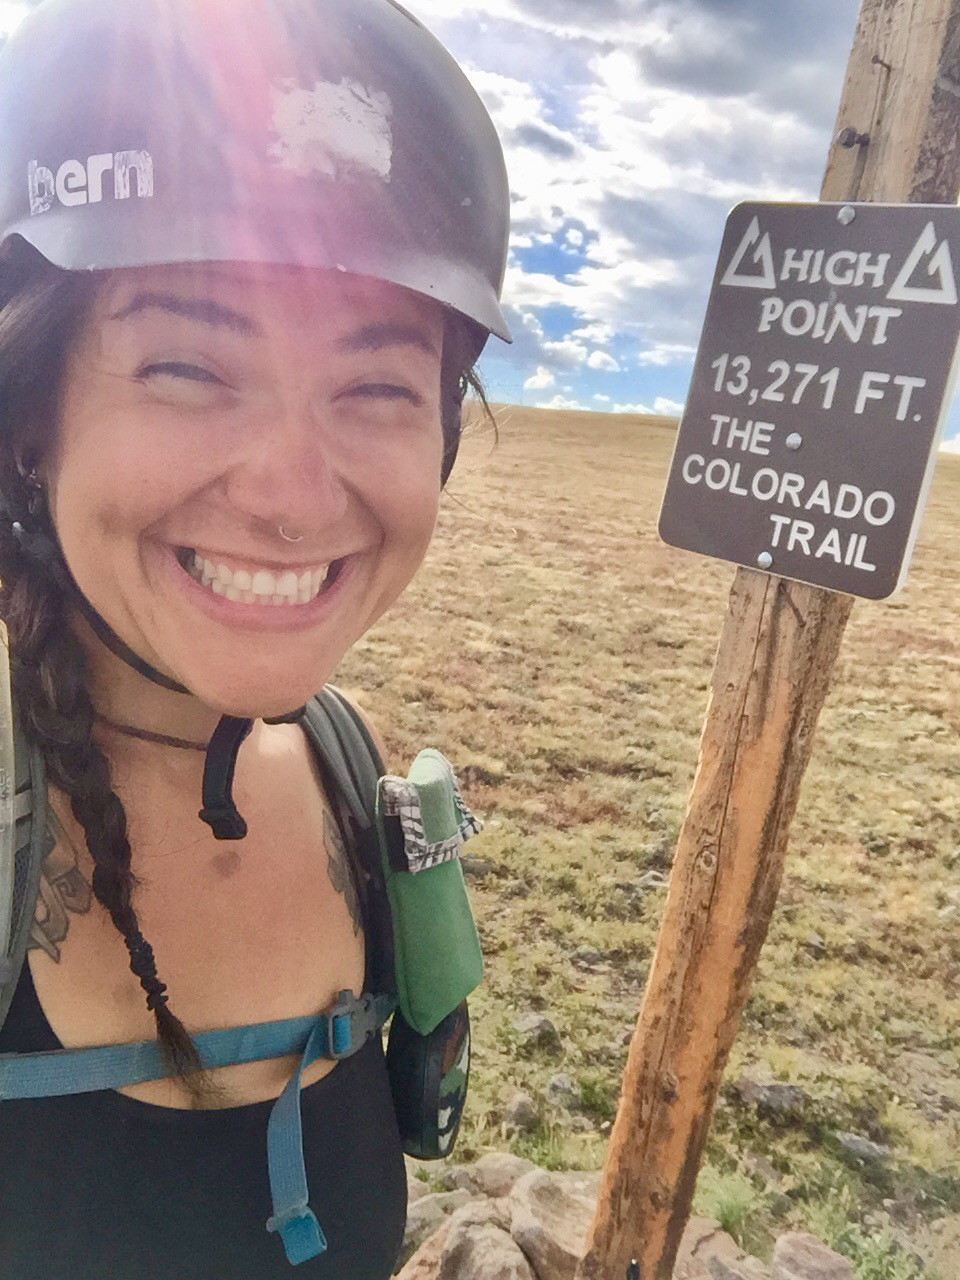 Alexandera Houchin at the highest point of the Colorado Trail outside Silverton, Colorado in July of 2018. Photo courtesy of Alexandera Houchin